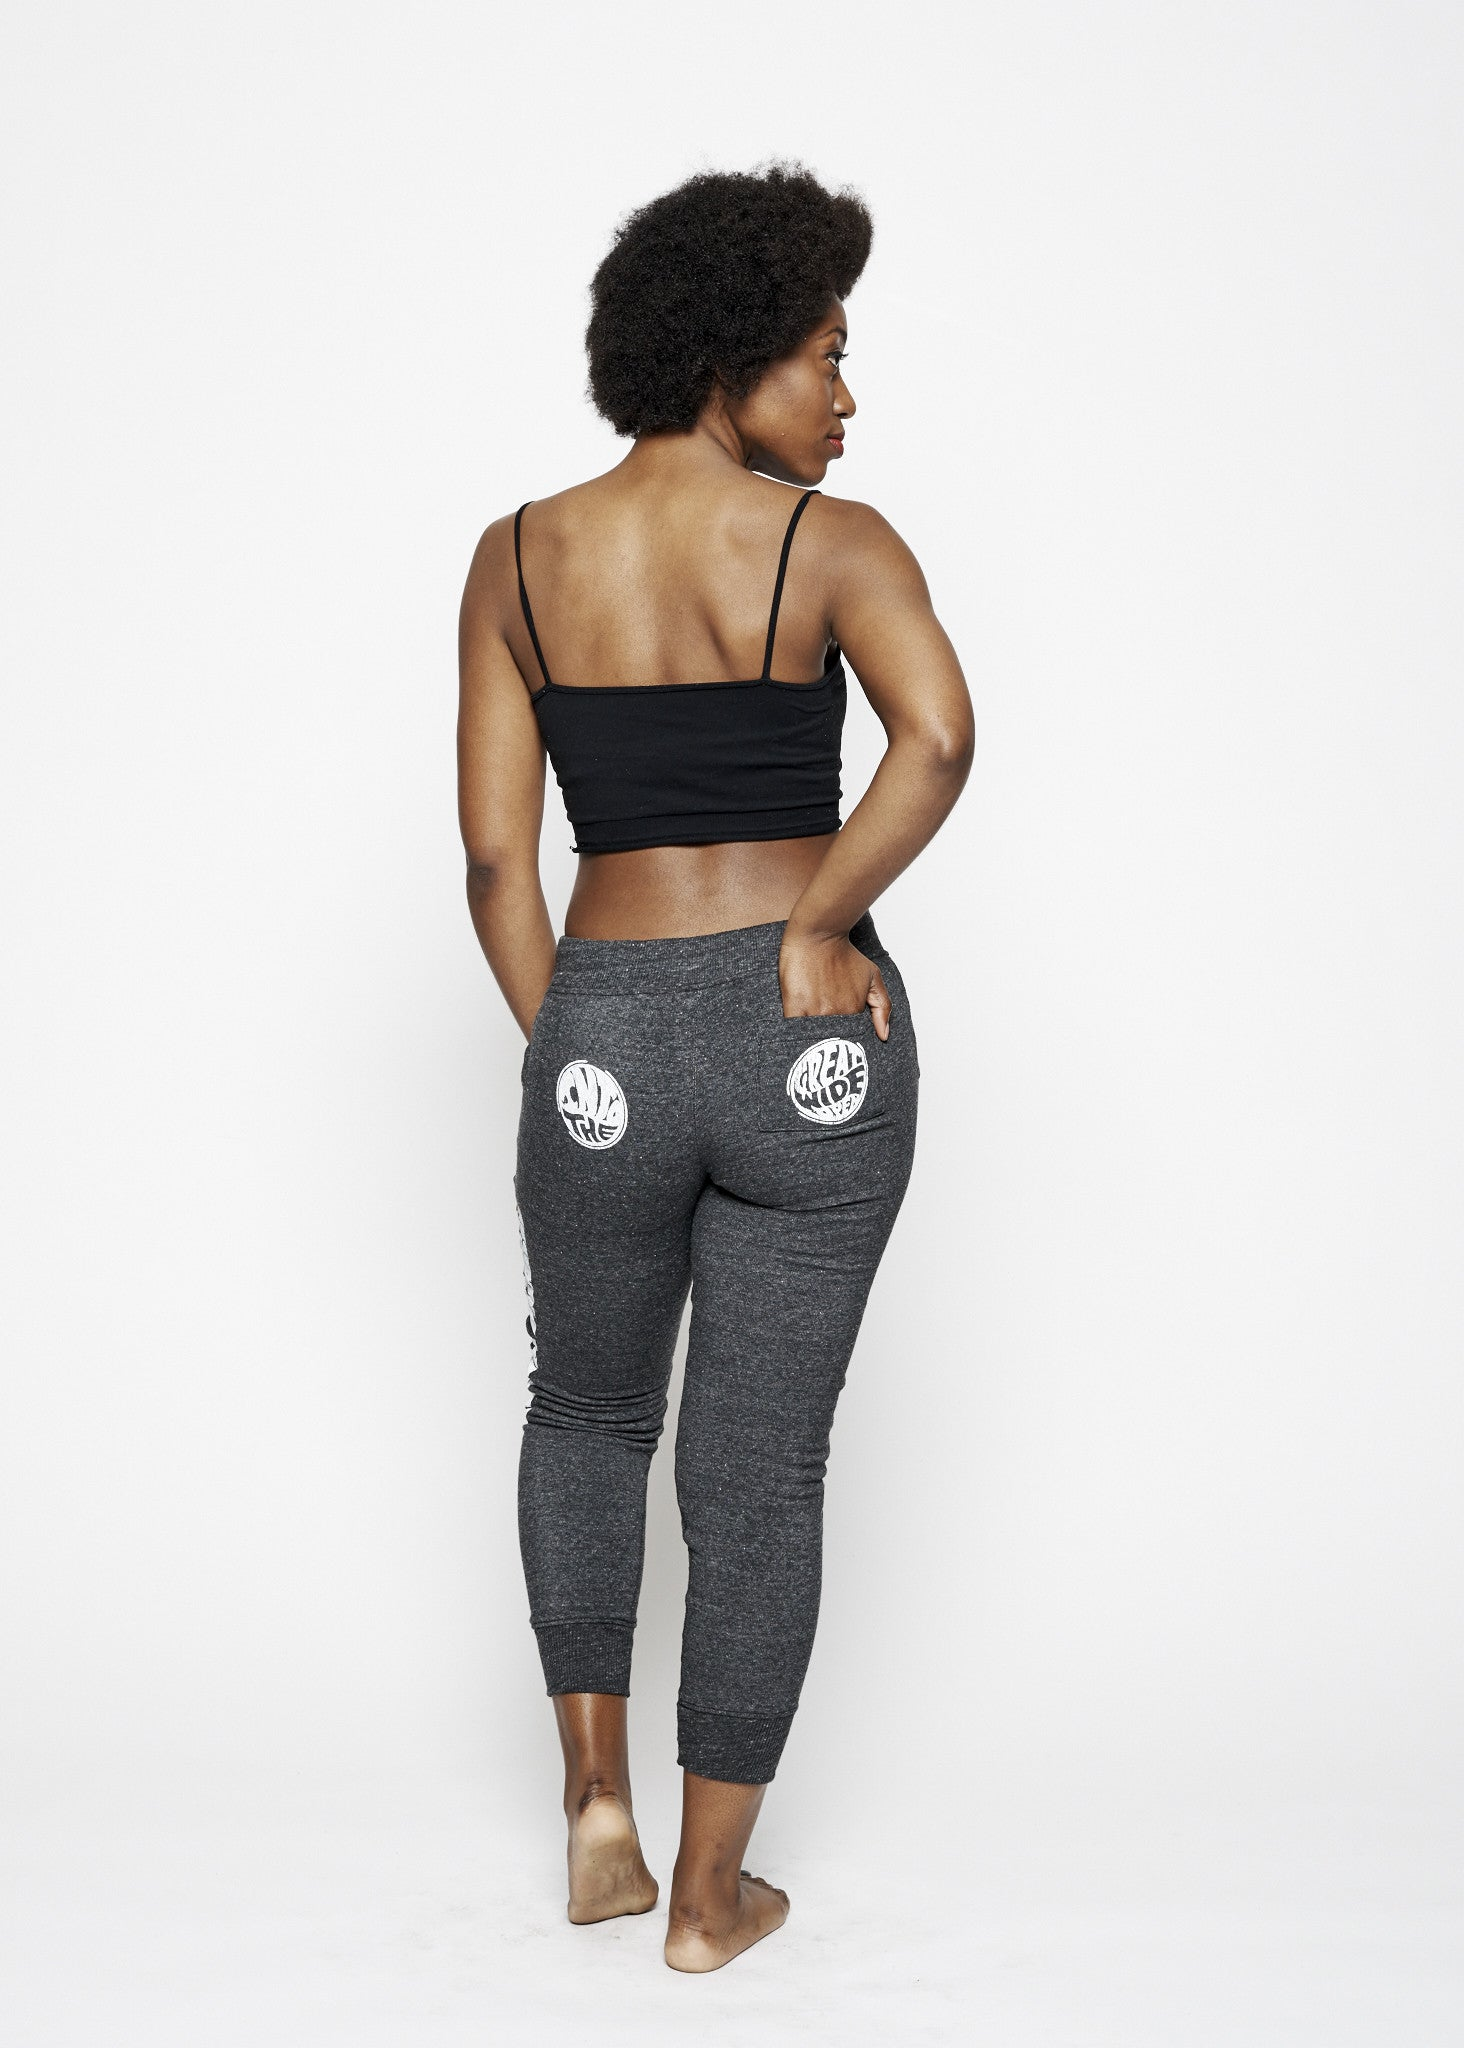 Into The Great Wide Open Sweatpants - Vintage Black - Women's Pants - Midnight Rider